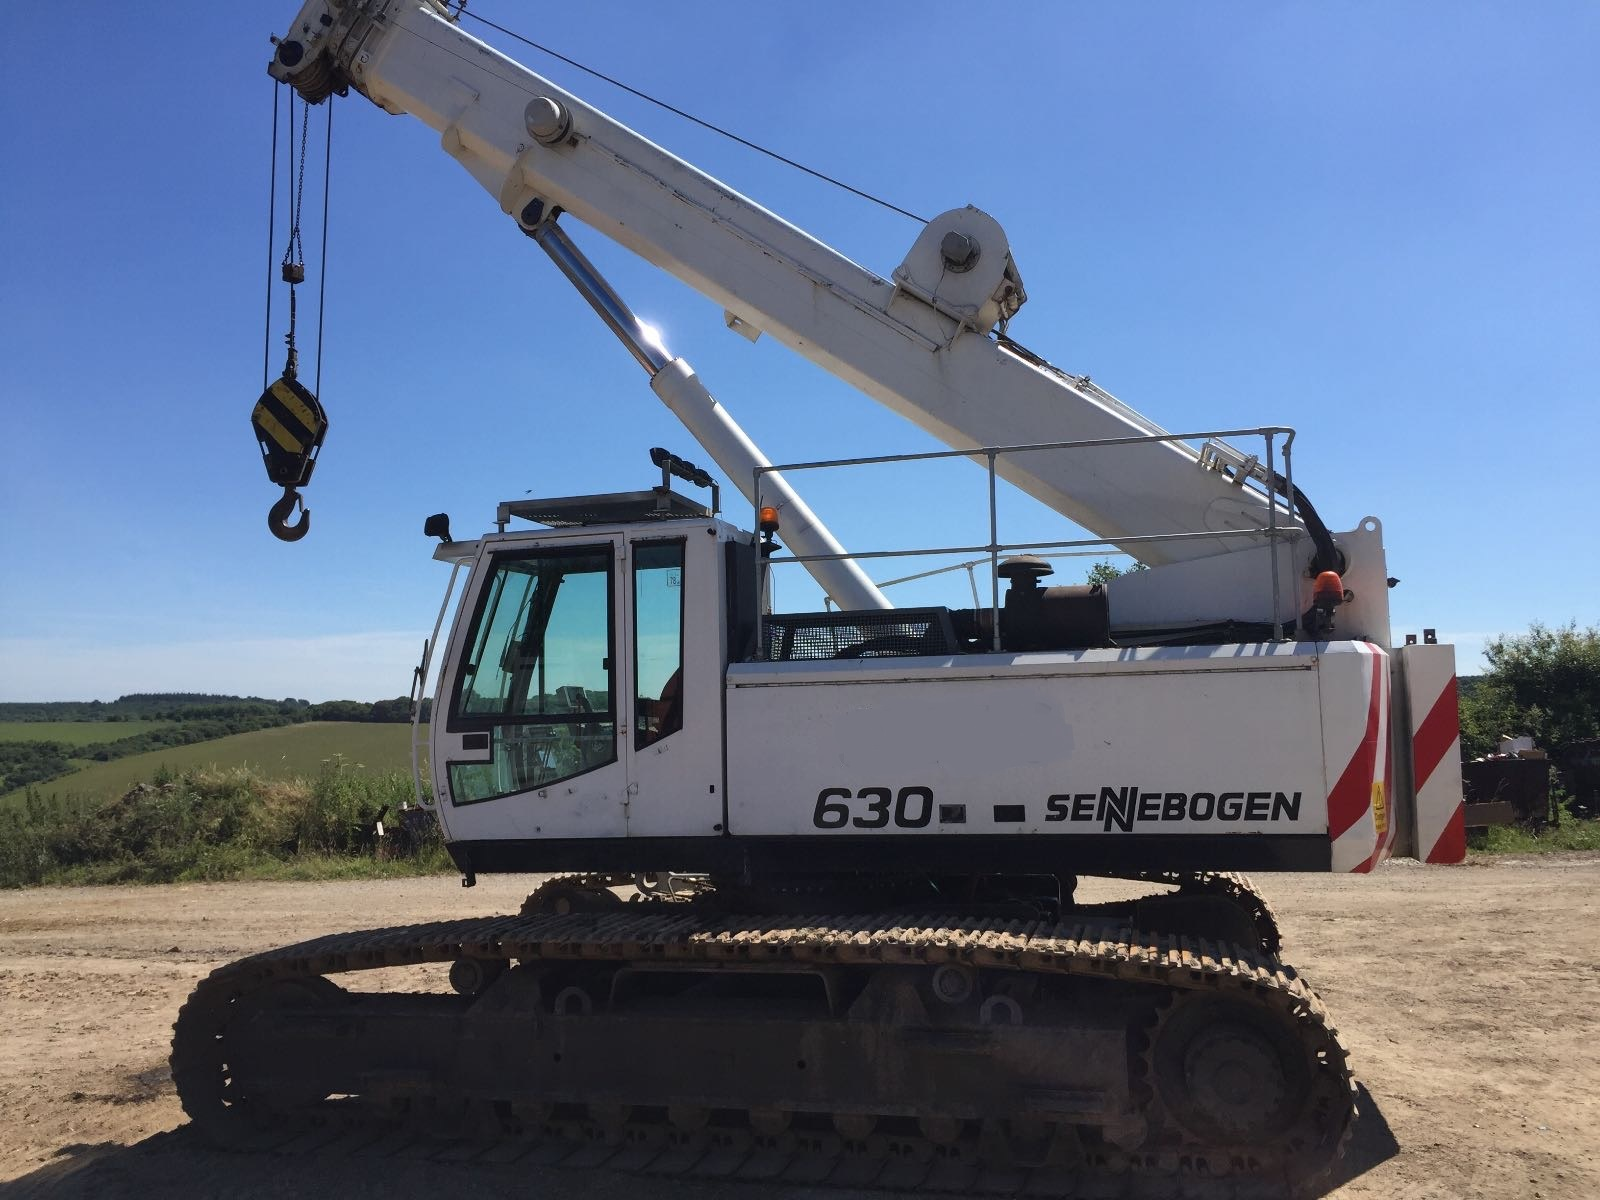 Used Sennebogen 630R 40 tons capacity telescopic crawler crane for sale